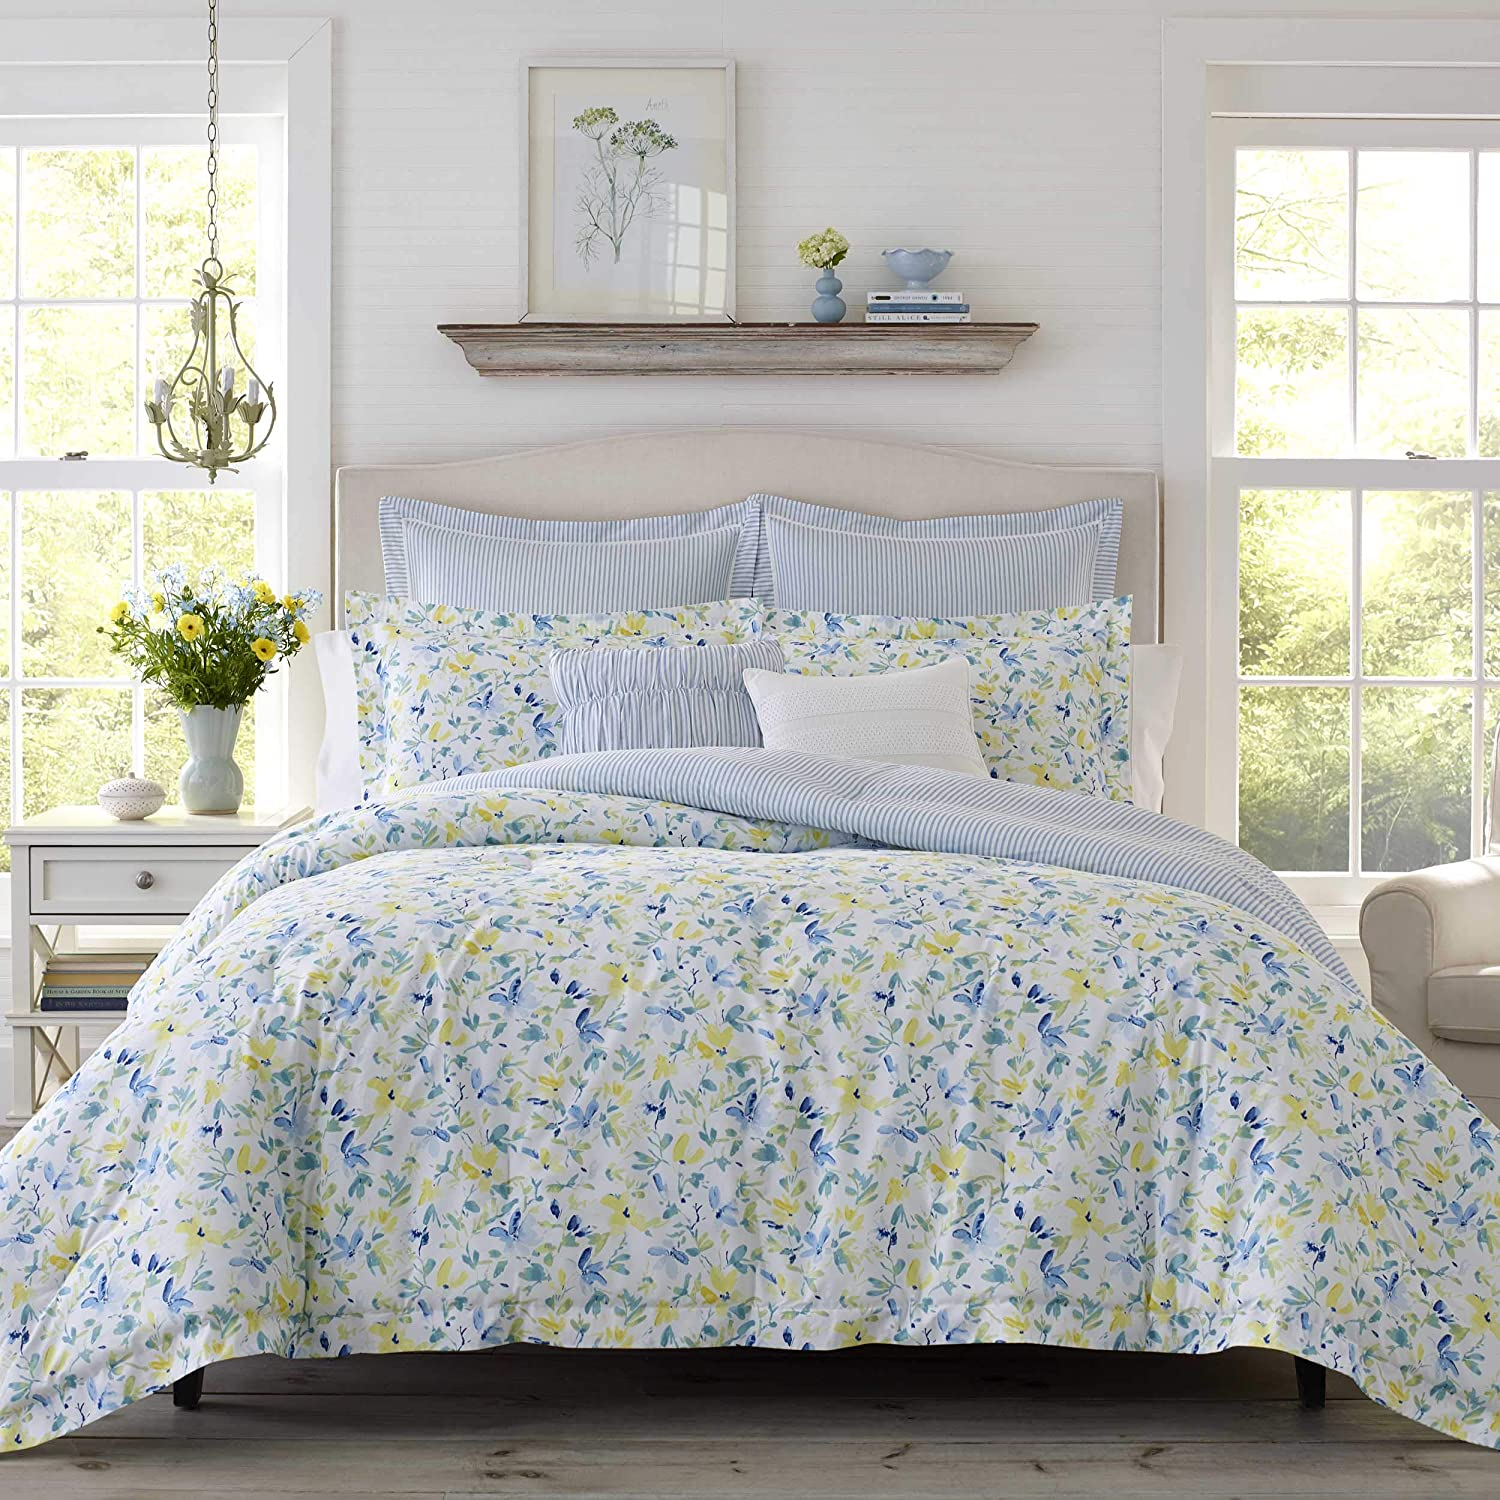 overseas Laura Ashley Nora Collection Comforter Set-Ultra Soft Max 44% OFF Se All